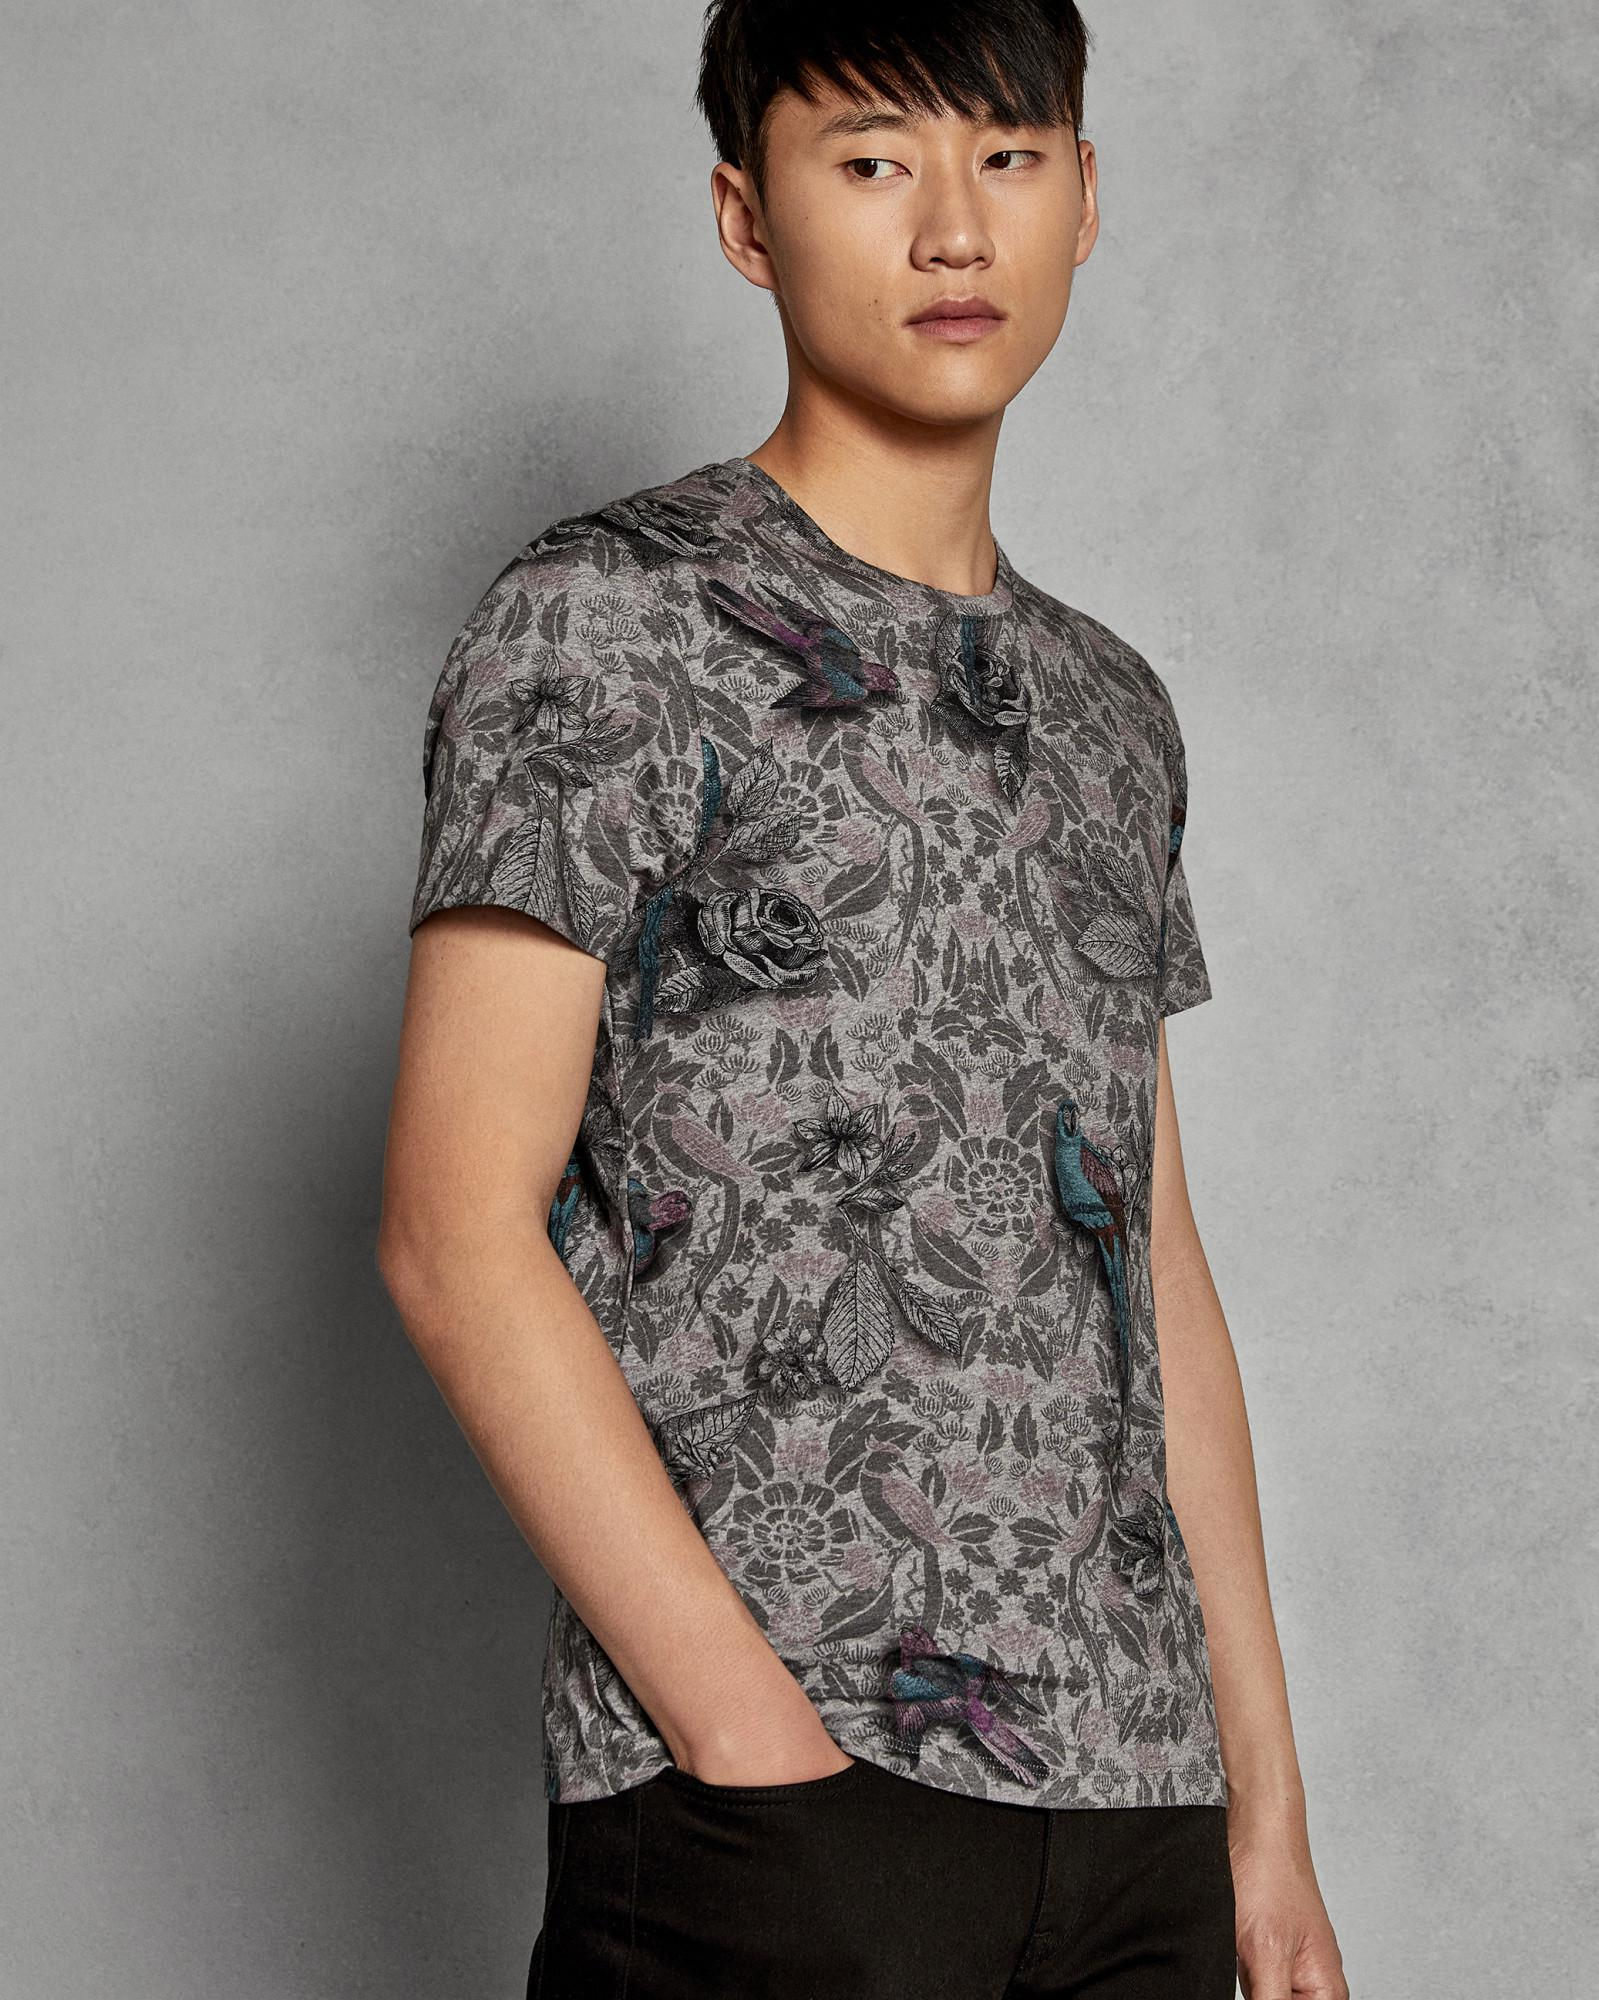 c5360f8b5bff7e Ted Baker Parrot Print Cotton T-shirt in Gray for Men - Lyst